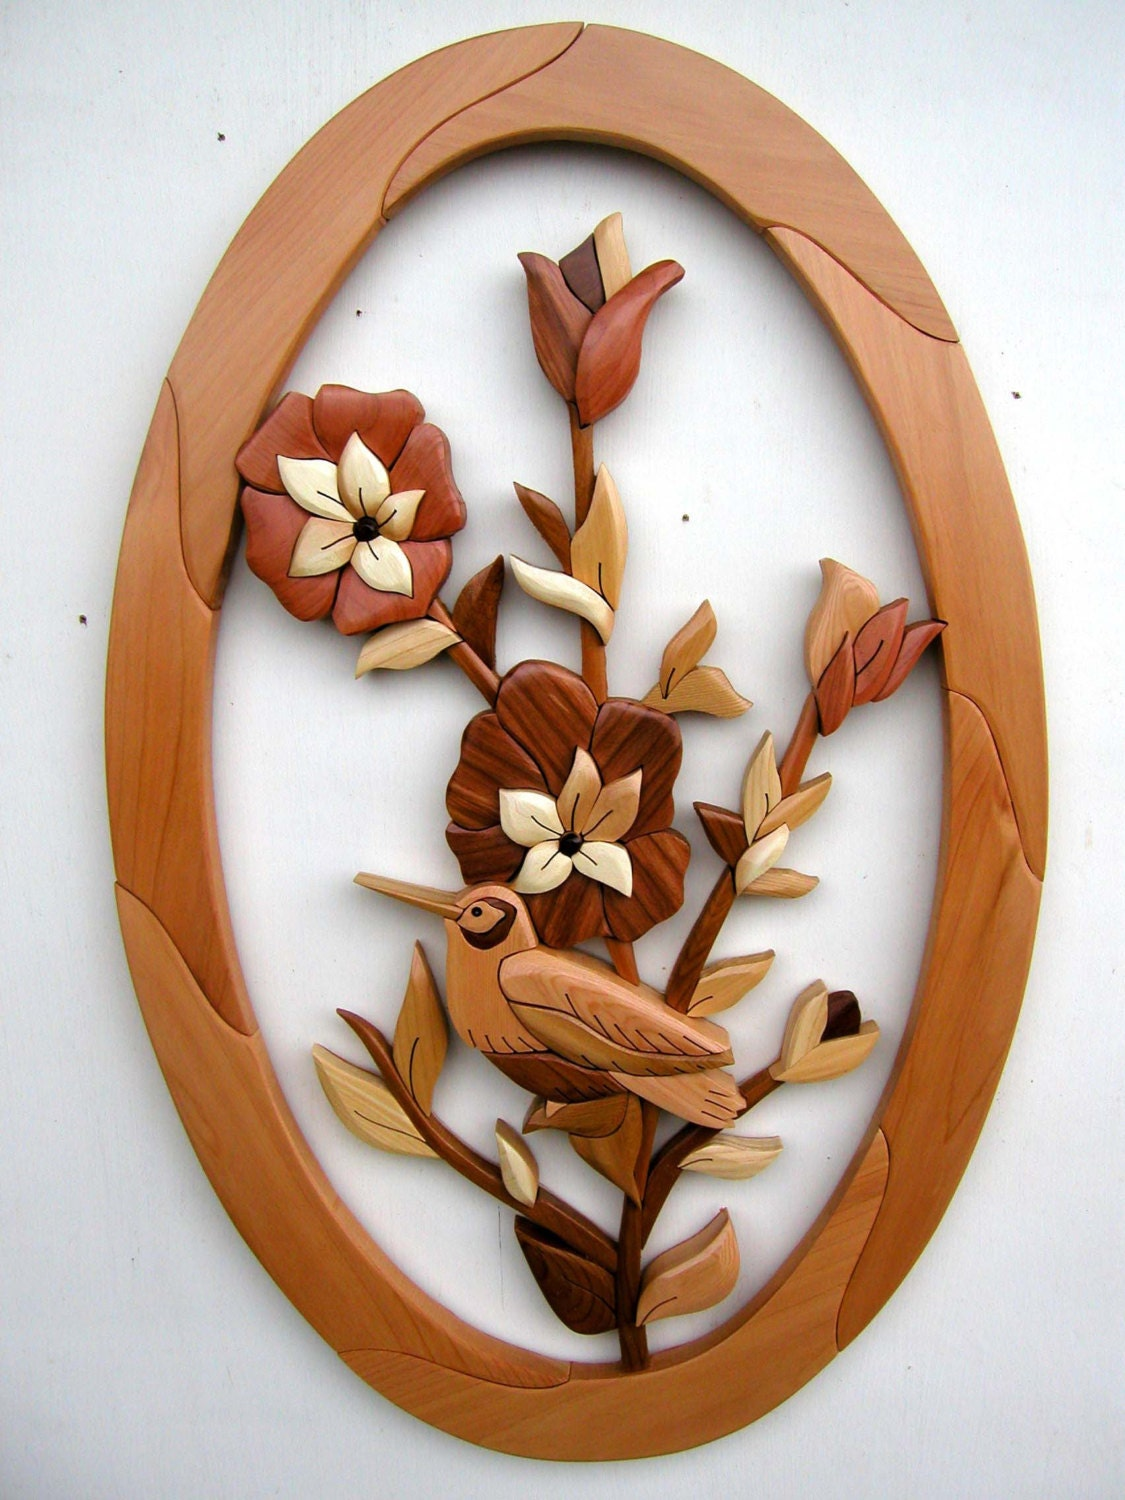 Intarsia Woodworking Pattern Flowers From